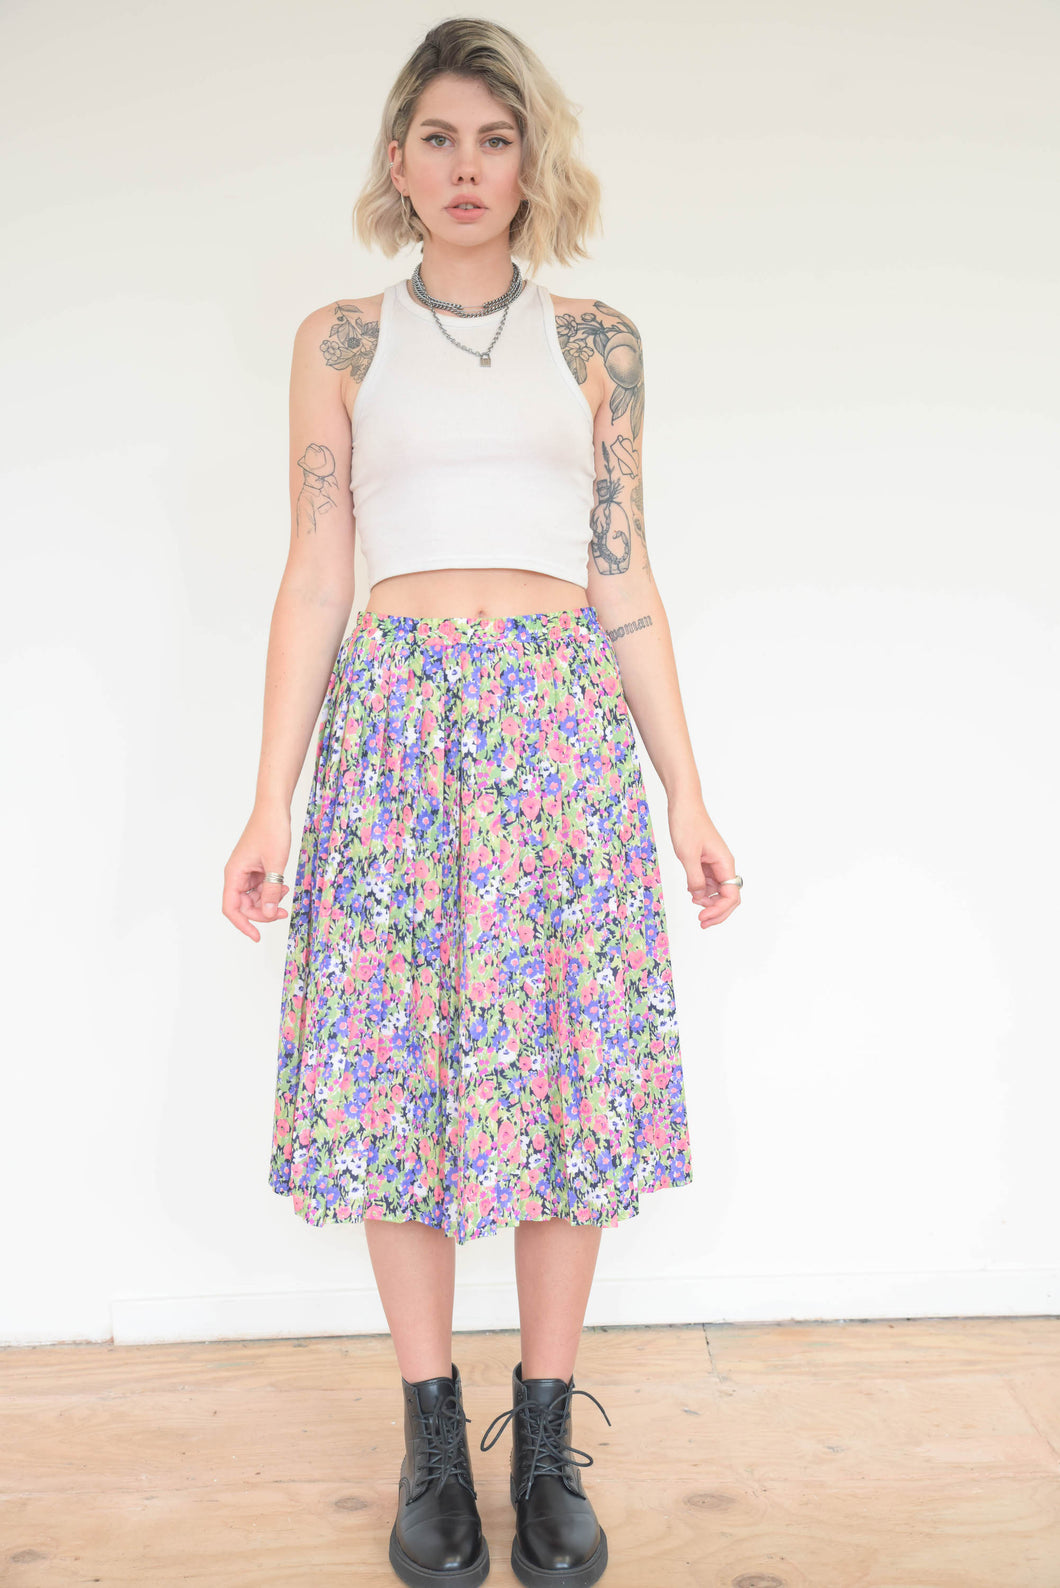 Vintage 70s Skirt Pleated in Pink Purple Green Flower Pattern in M